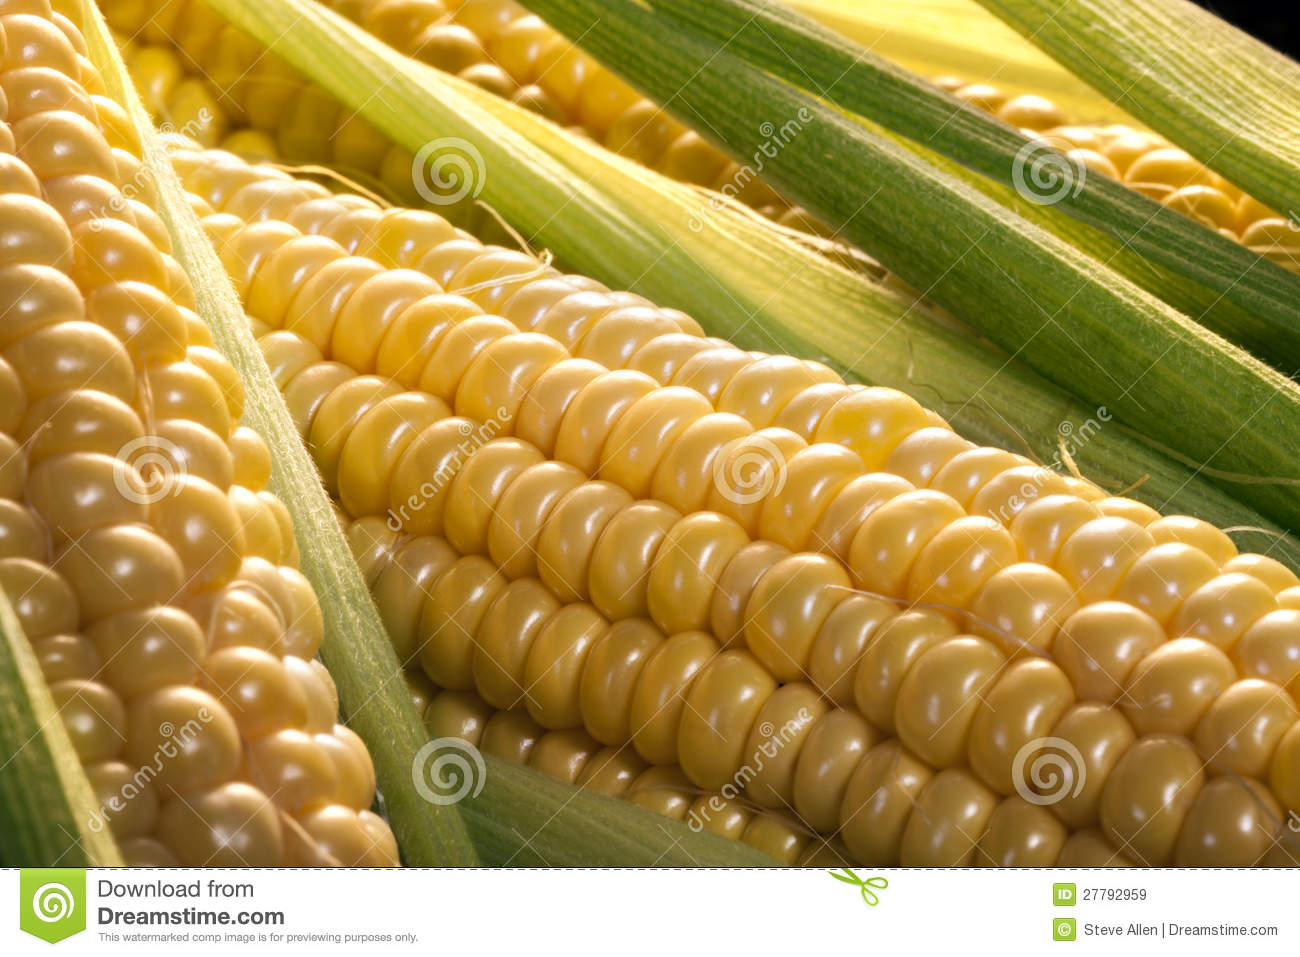 how to cook corn on the cob without the husk